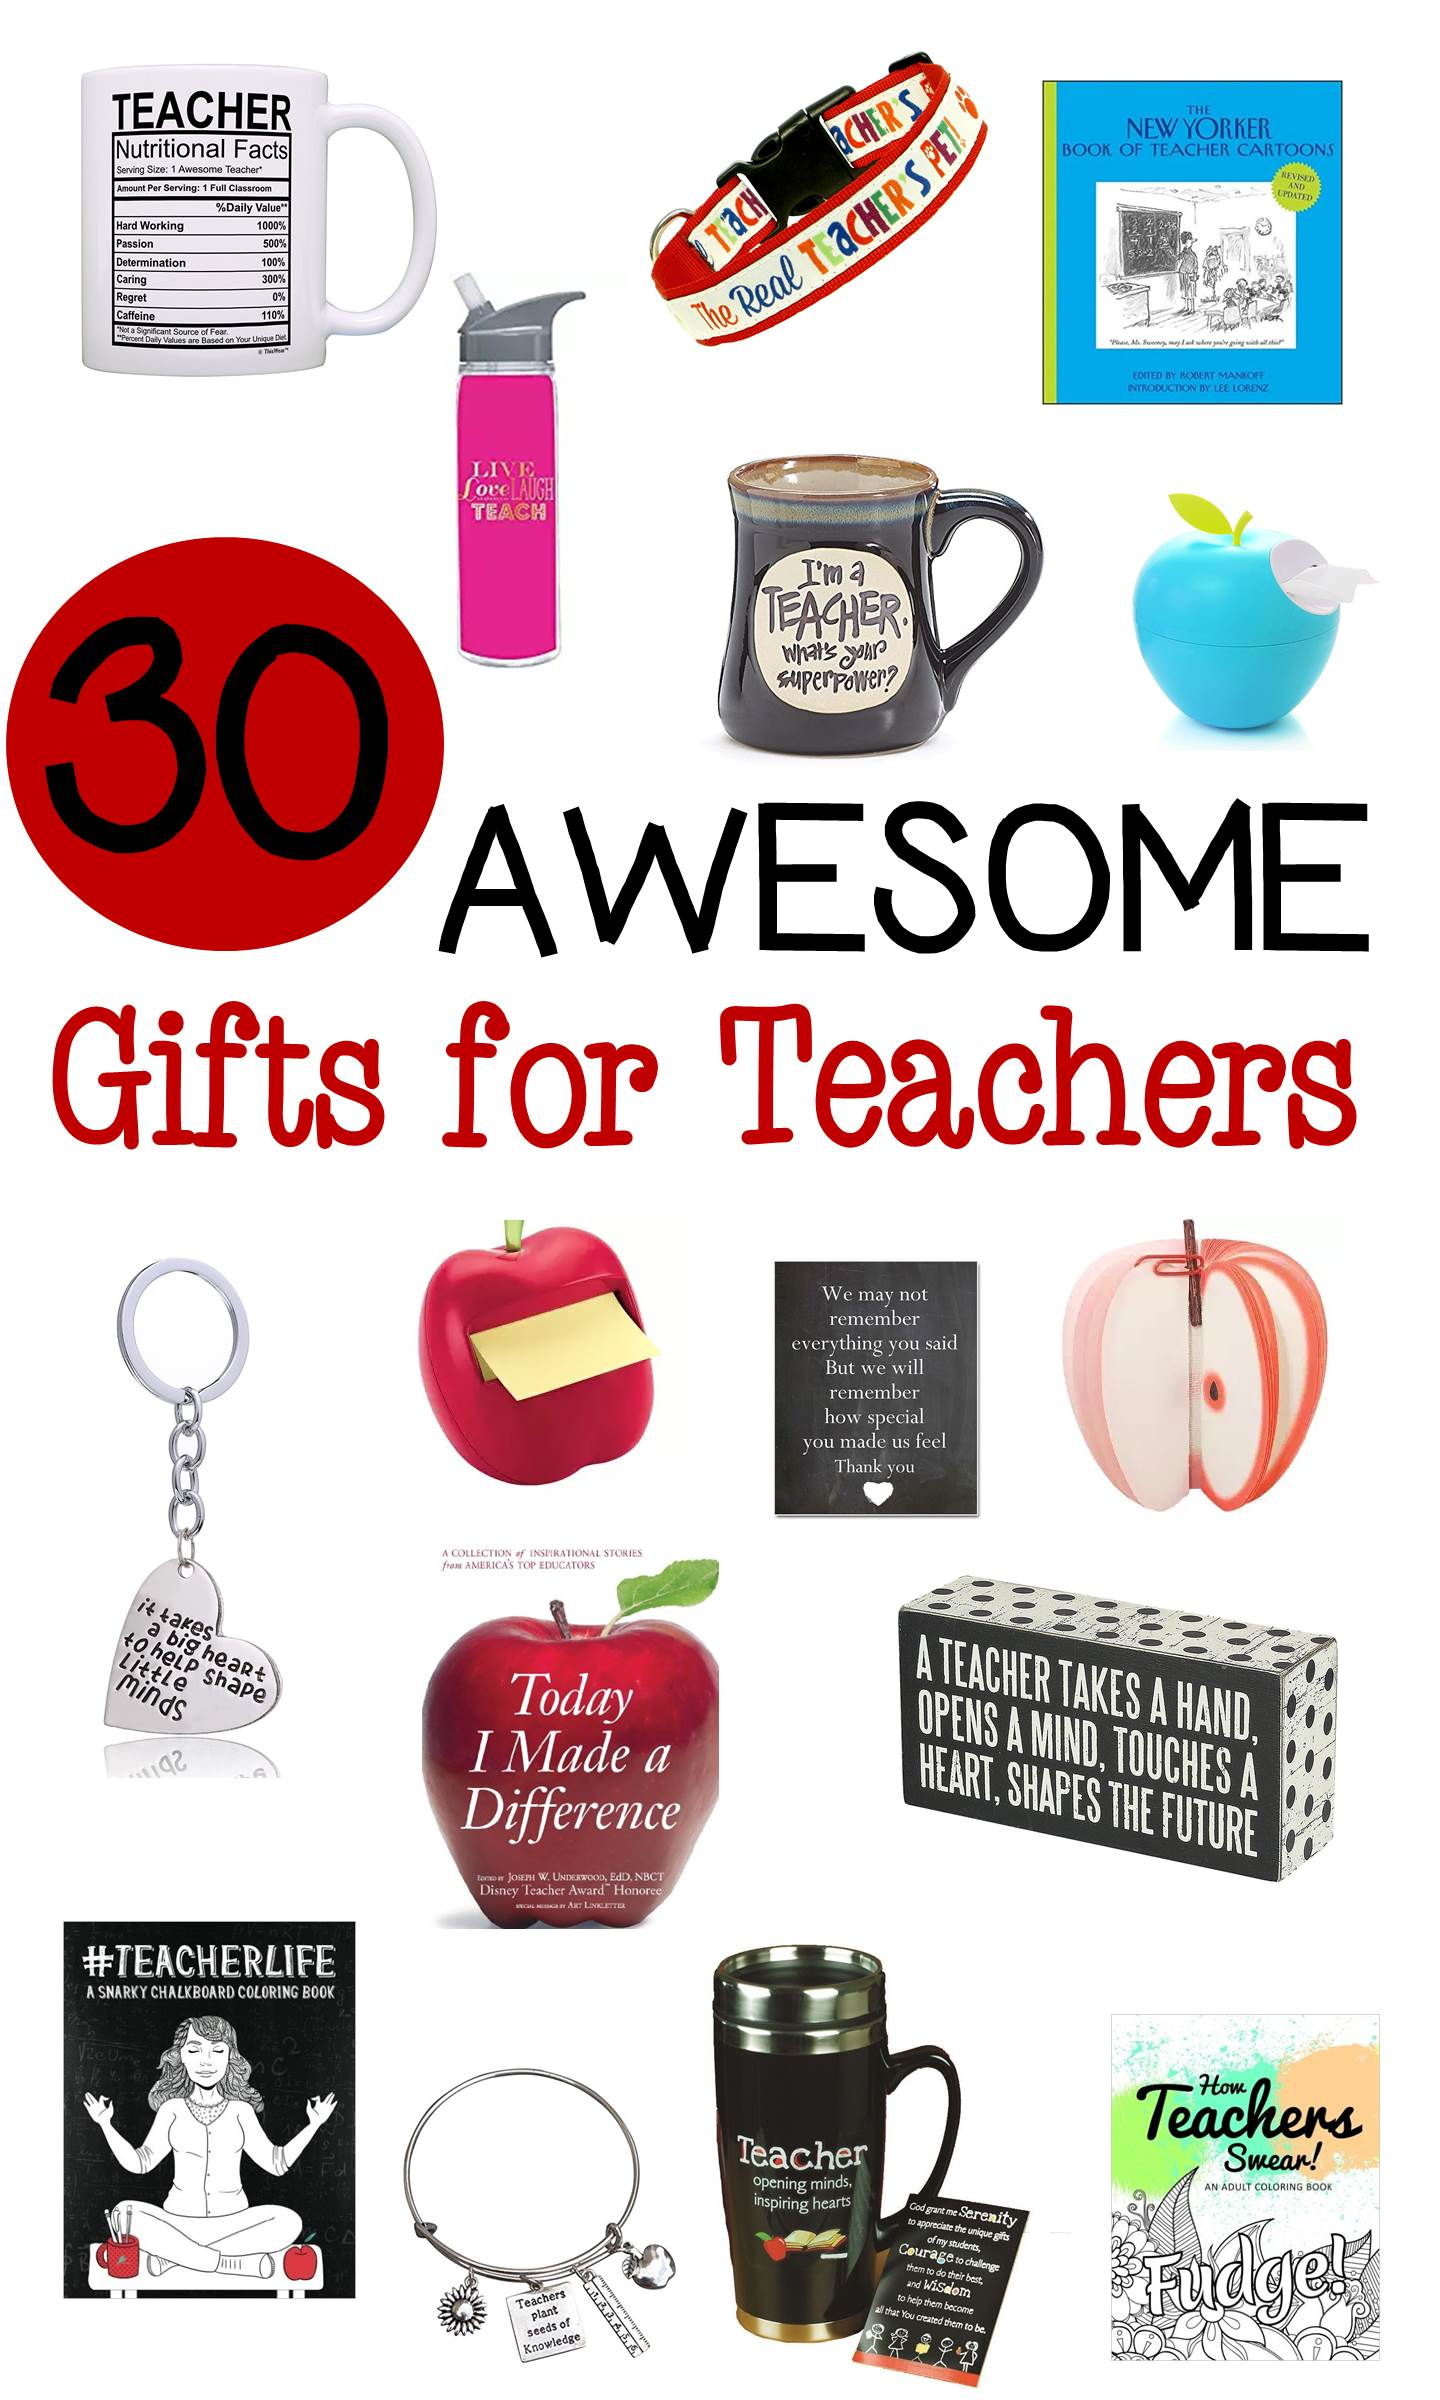 Whether you are looking for Christmas gifts for teachers, Back to School gifts for teachers, or anytime gifts, there are great things in this list!